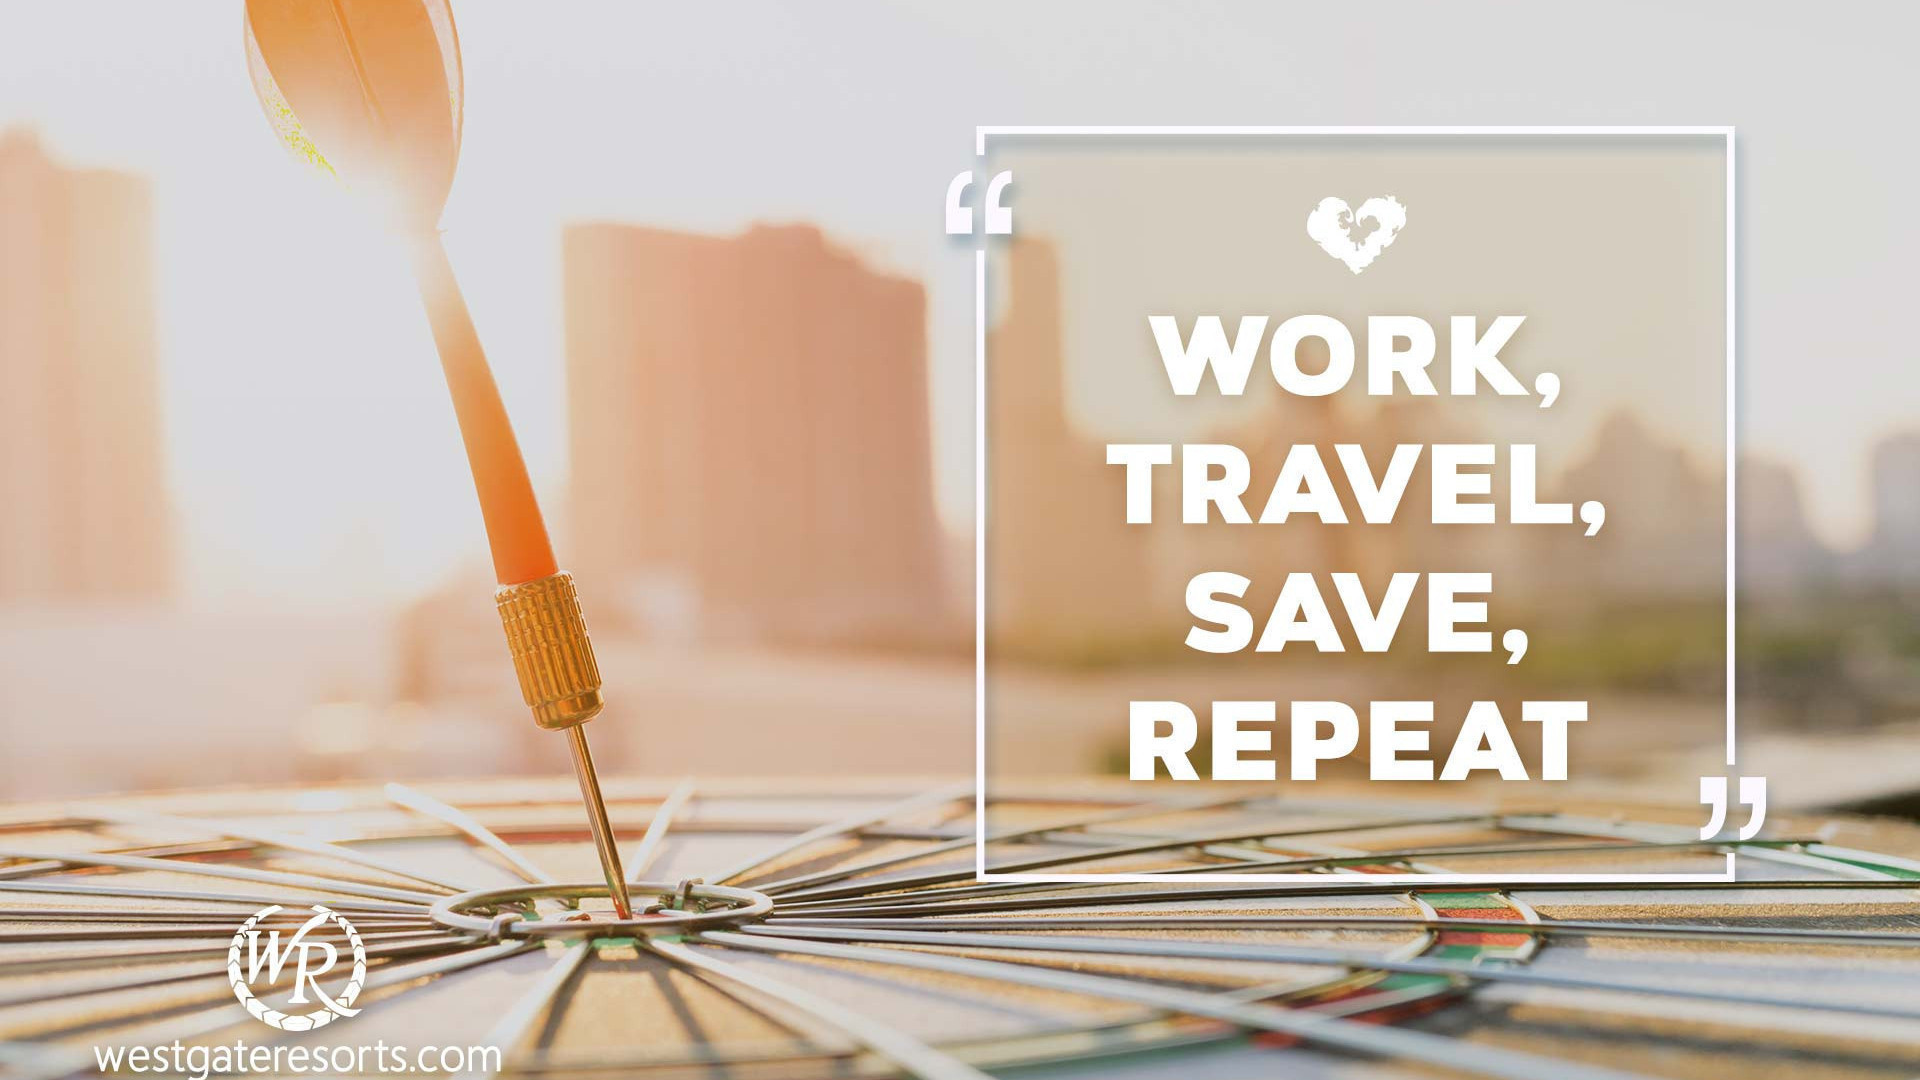 Work, Travel, Save, Repeat | Motivational Travel Quotes